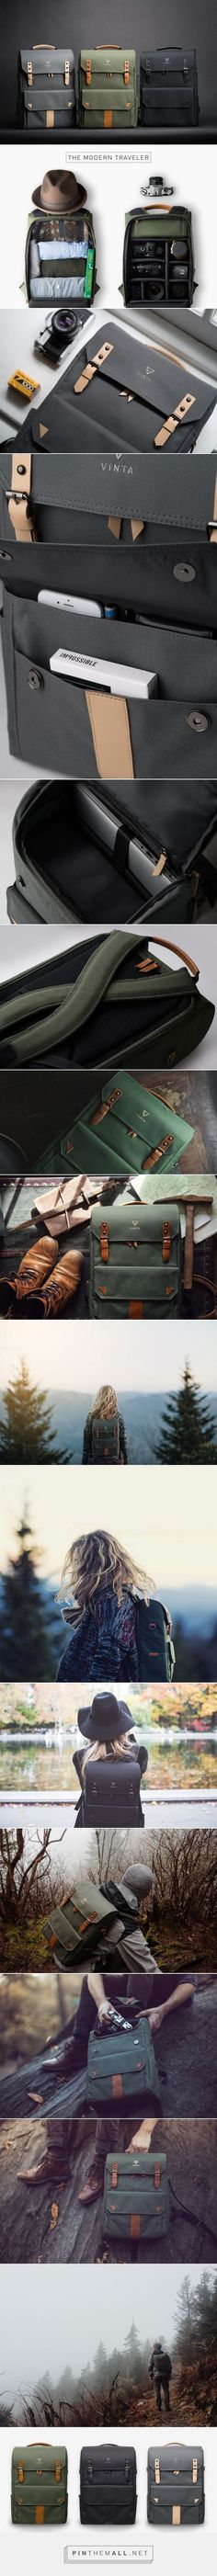 A Travel & Camera Bag for Everyday Adventures - Design Milk http://amzn.to/2qVD33G